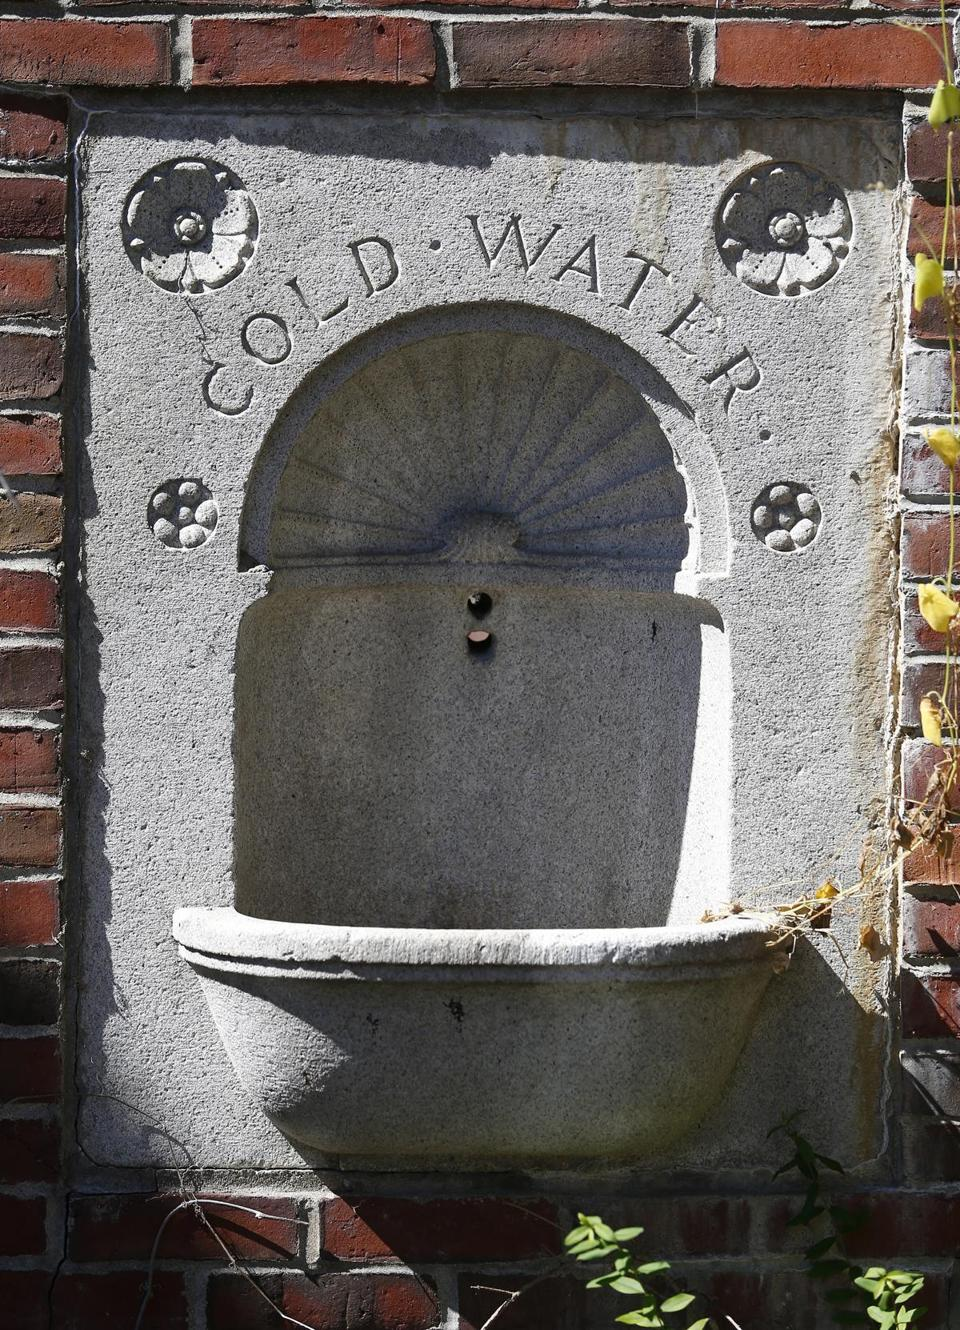 Among the unusual artifacts on the grounds is a drinking fountain basin embedded in a brick archway.